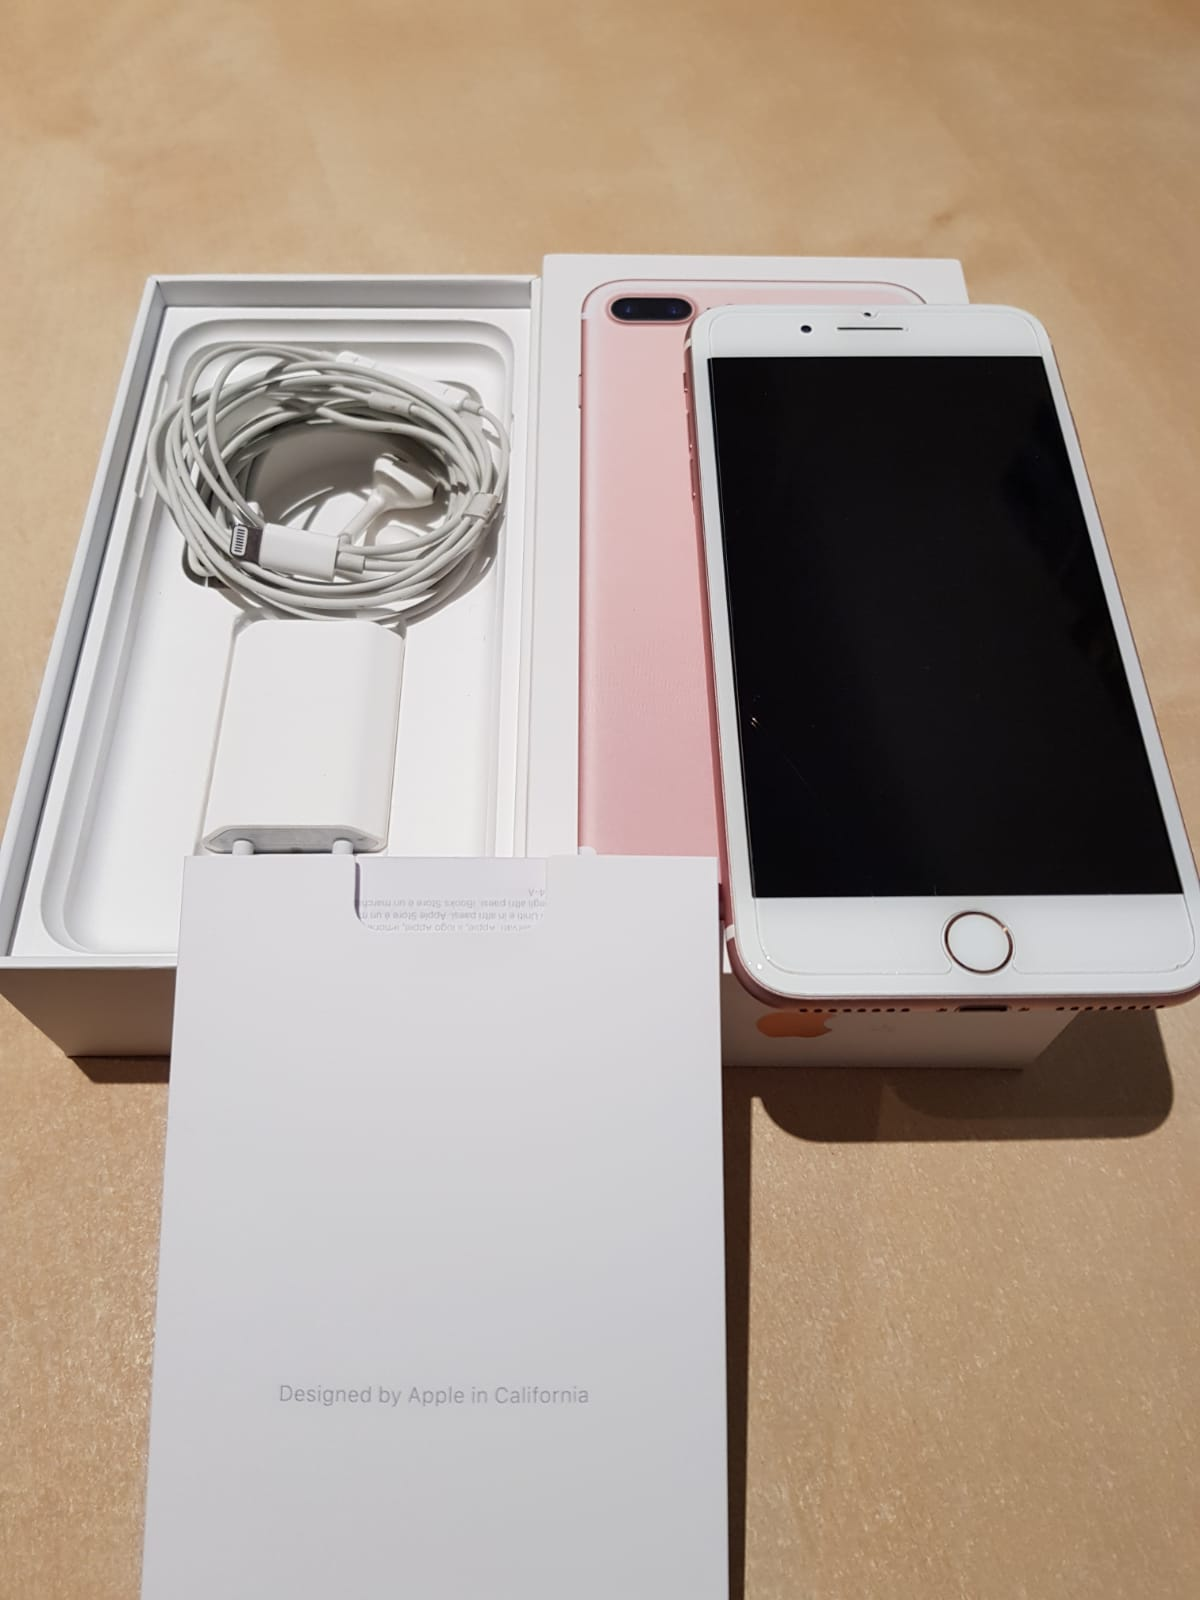 e4f5cada185 venta iphone 7 plus oro rosa | venta segunda mano apple